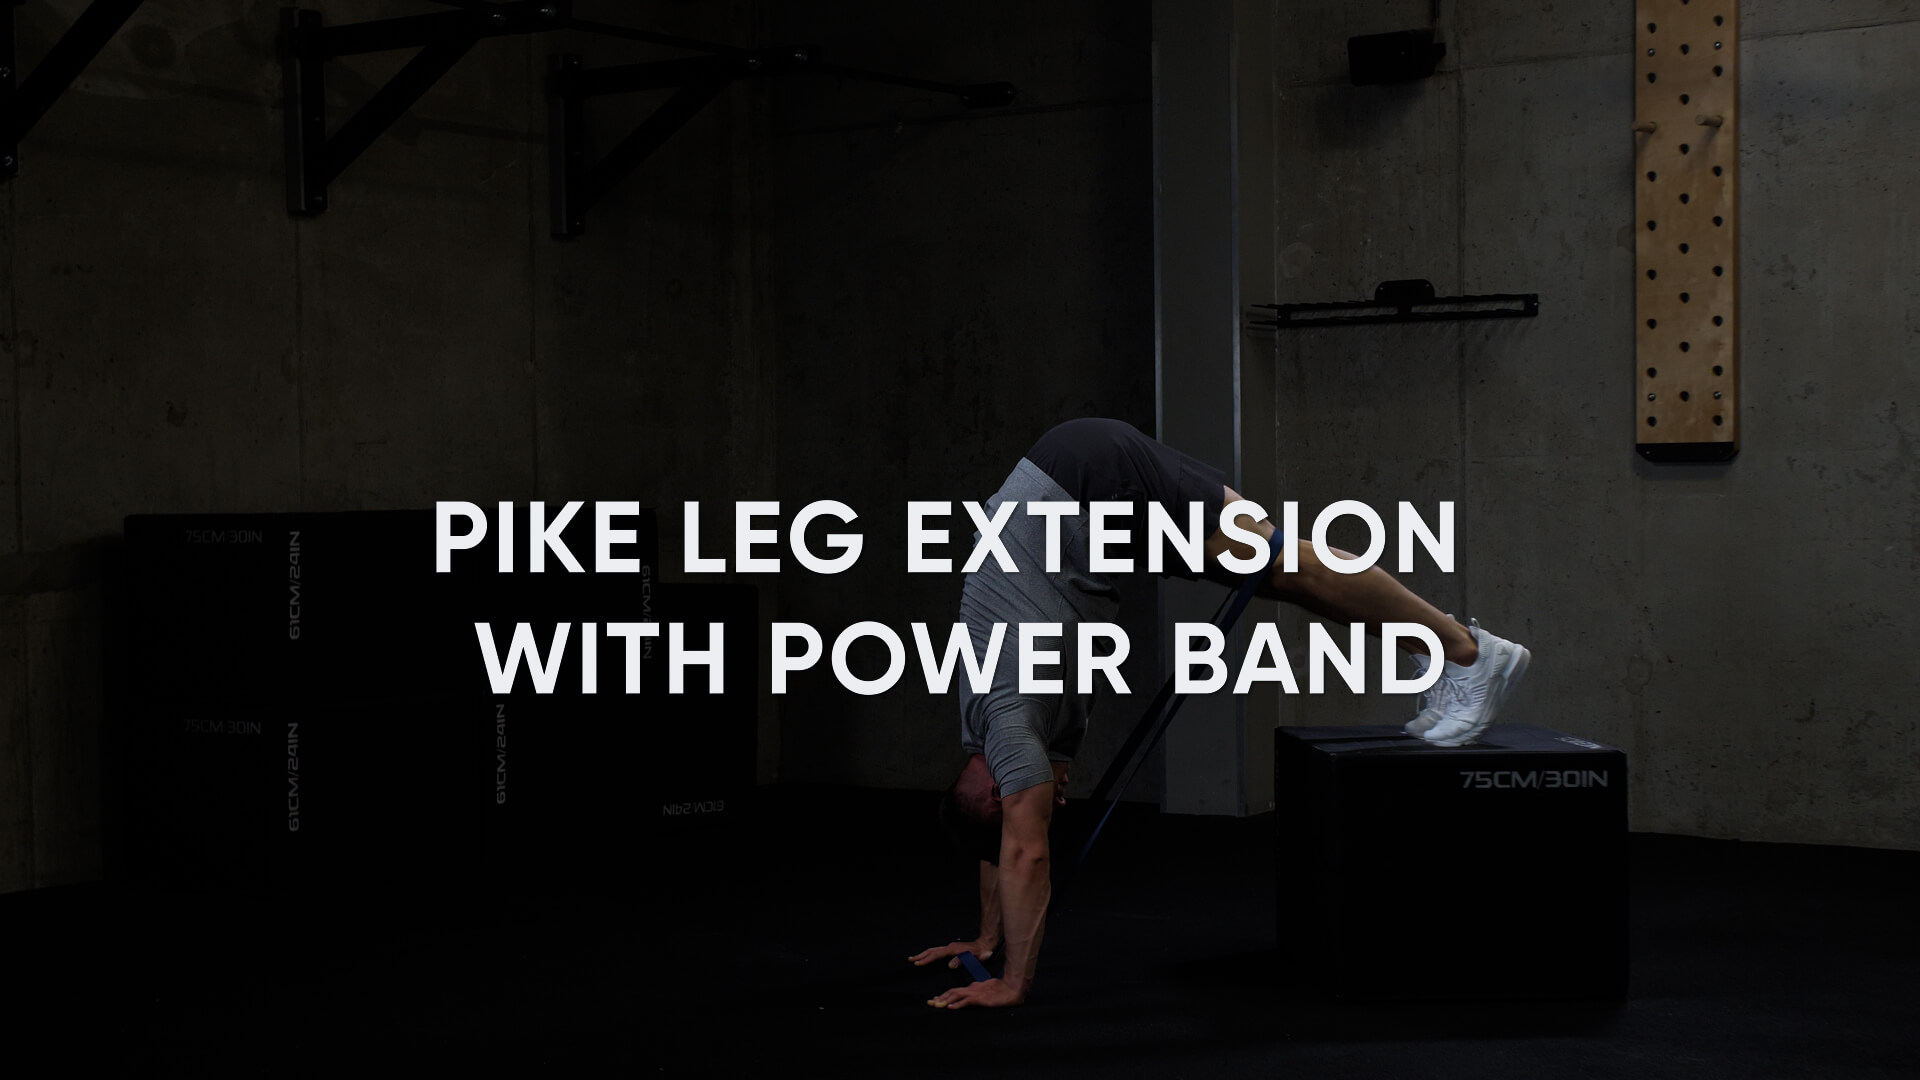 Pike Leg Extension with Power Band